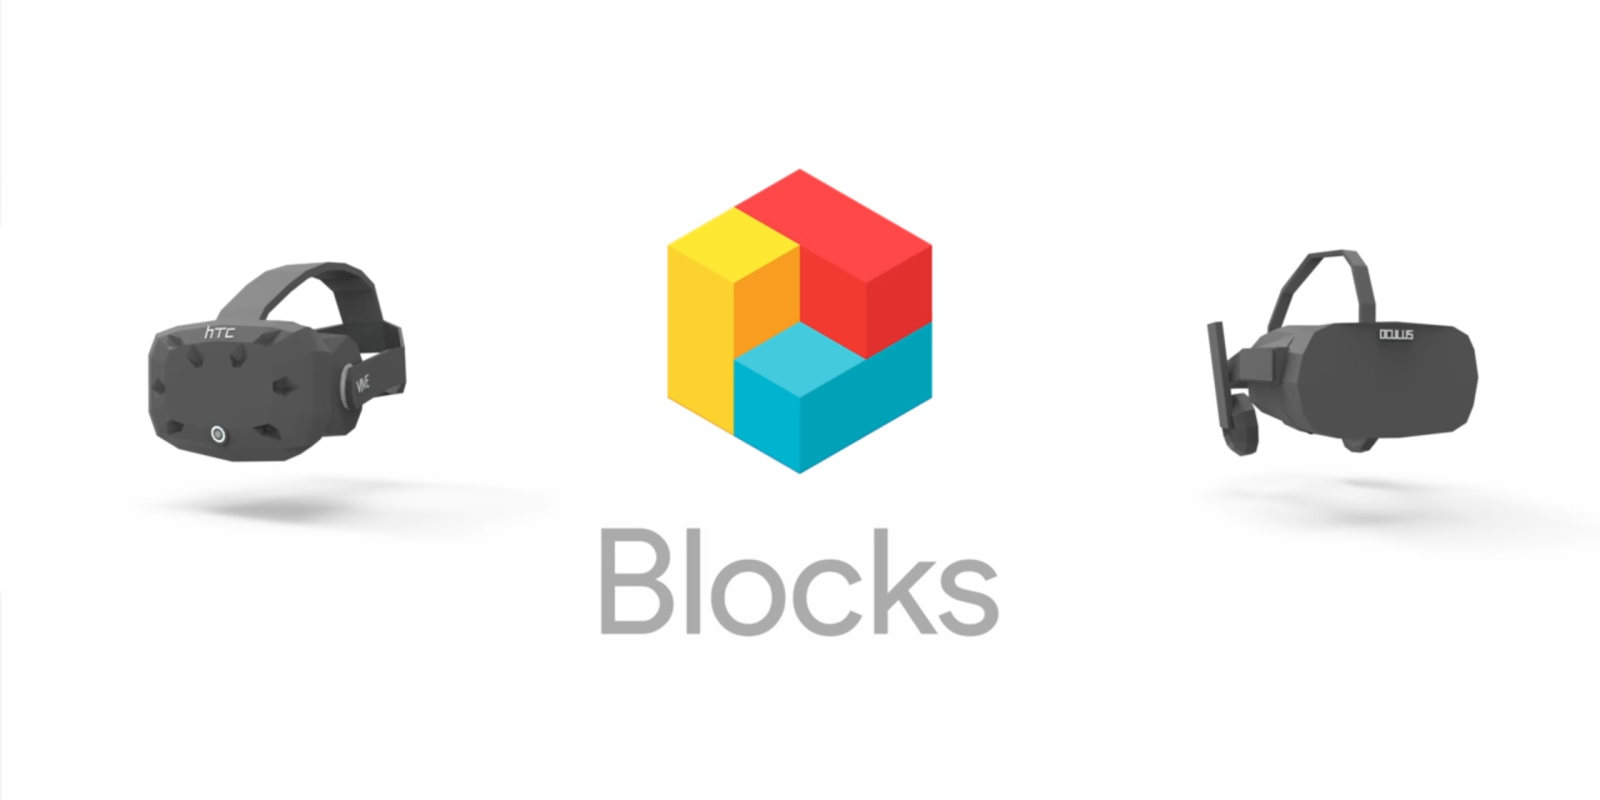 Google's Blocks VR object creation tool gets a big update w/ themes, improved snapping, Labs